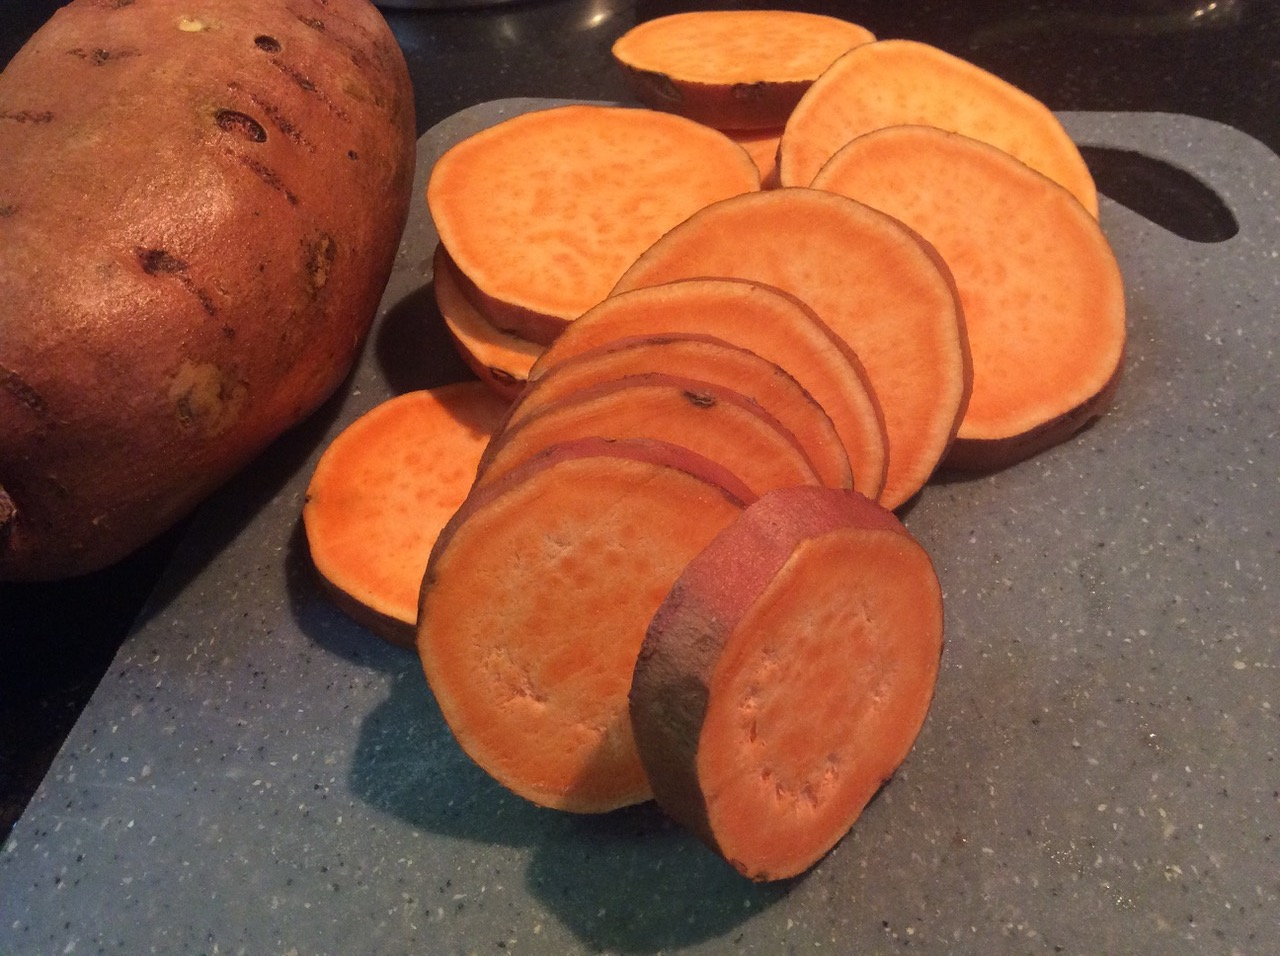 B sweet potato slices